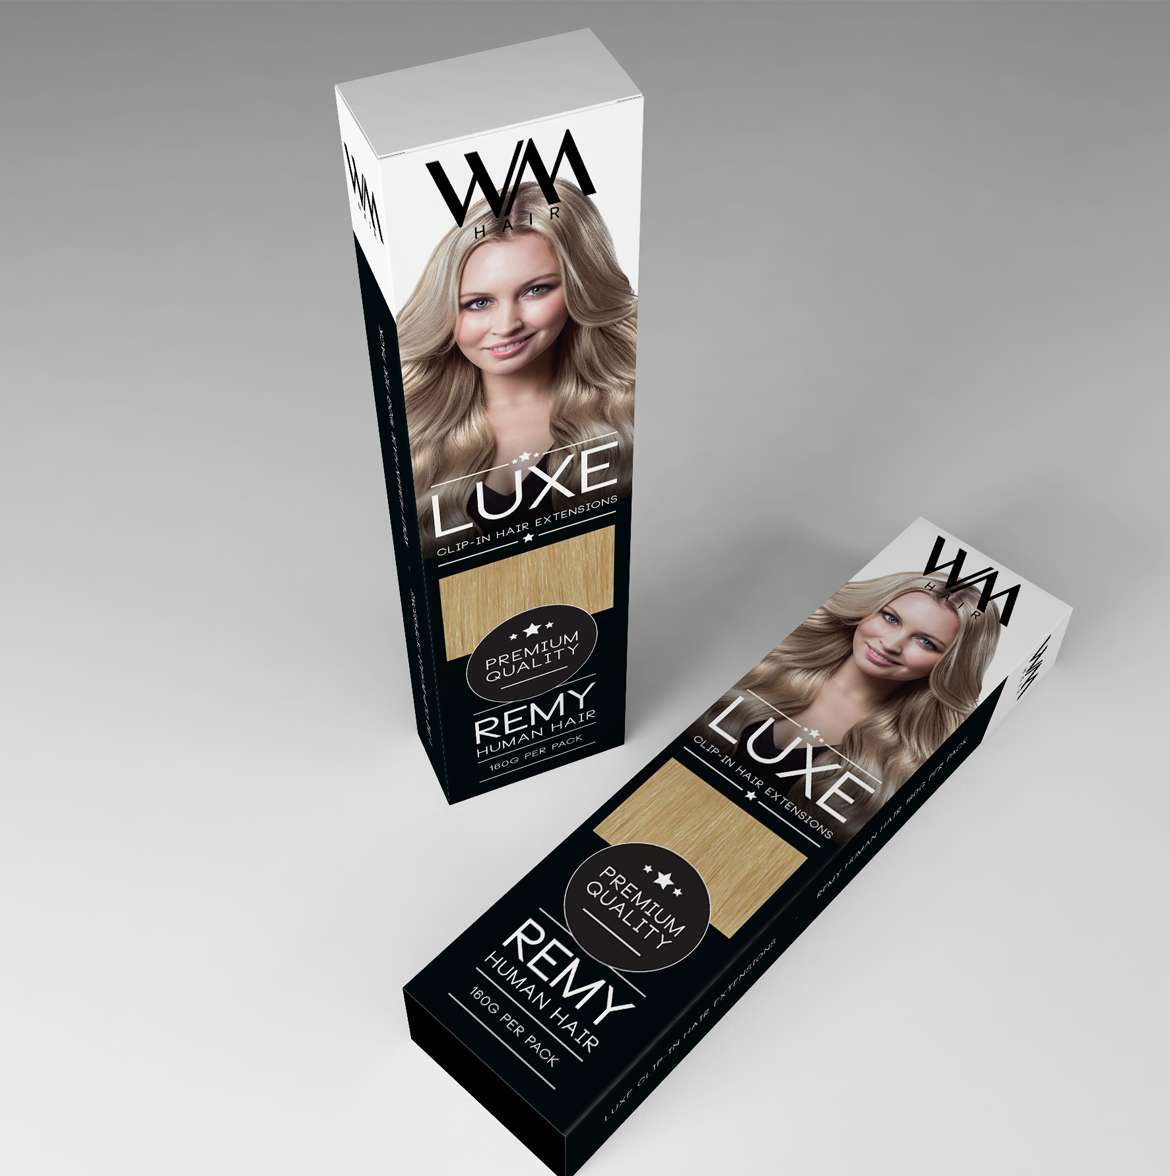 luxe-remy-human-hair-extensions-clip-in-packaging-design-2-image